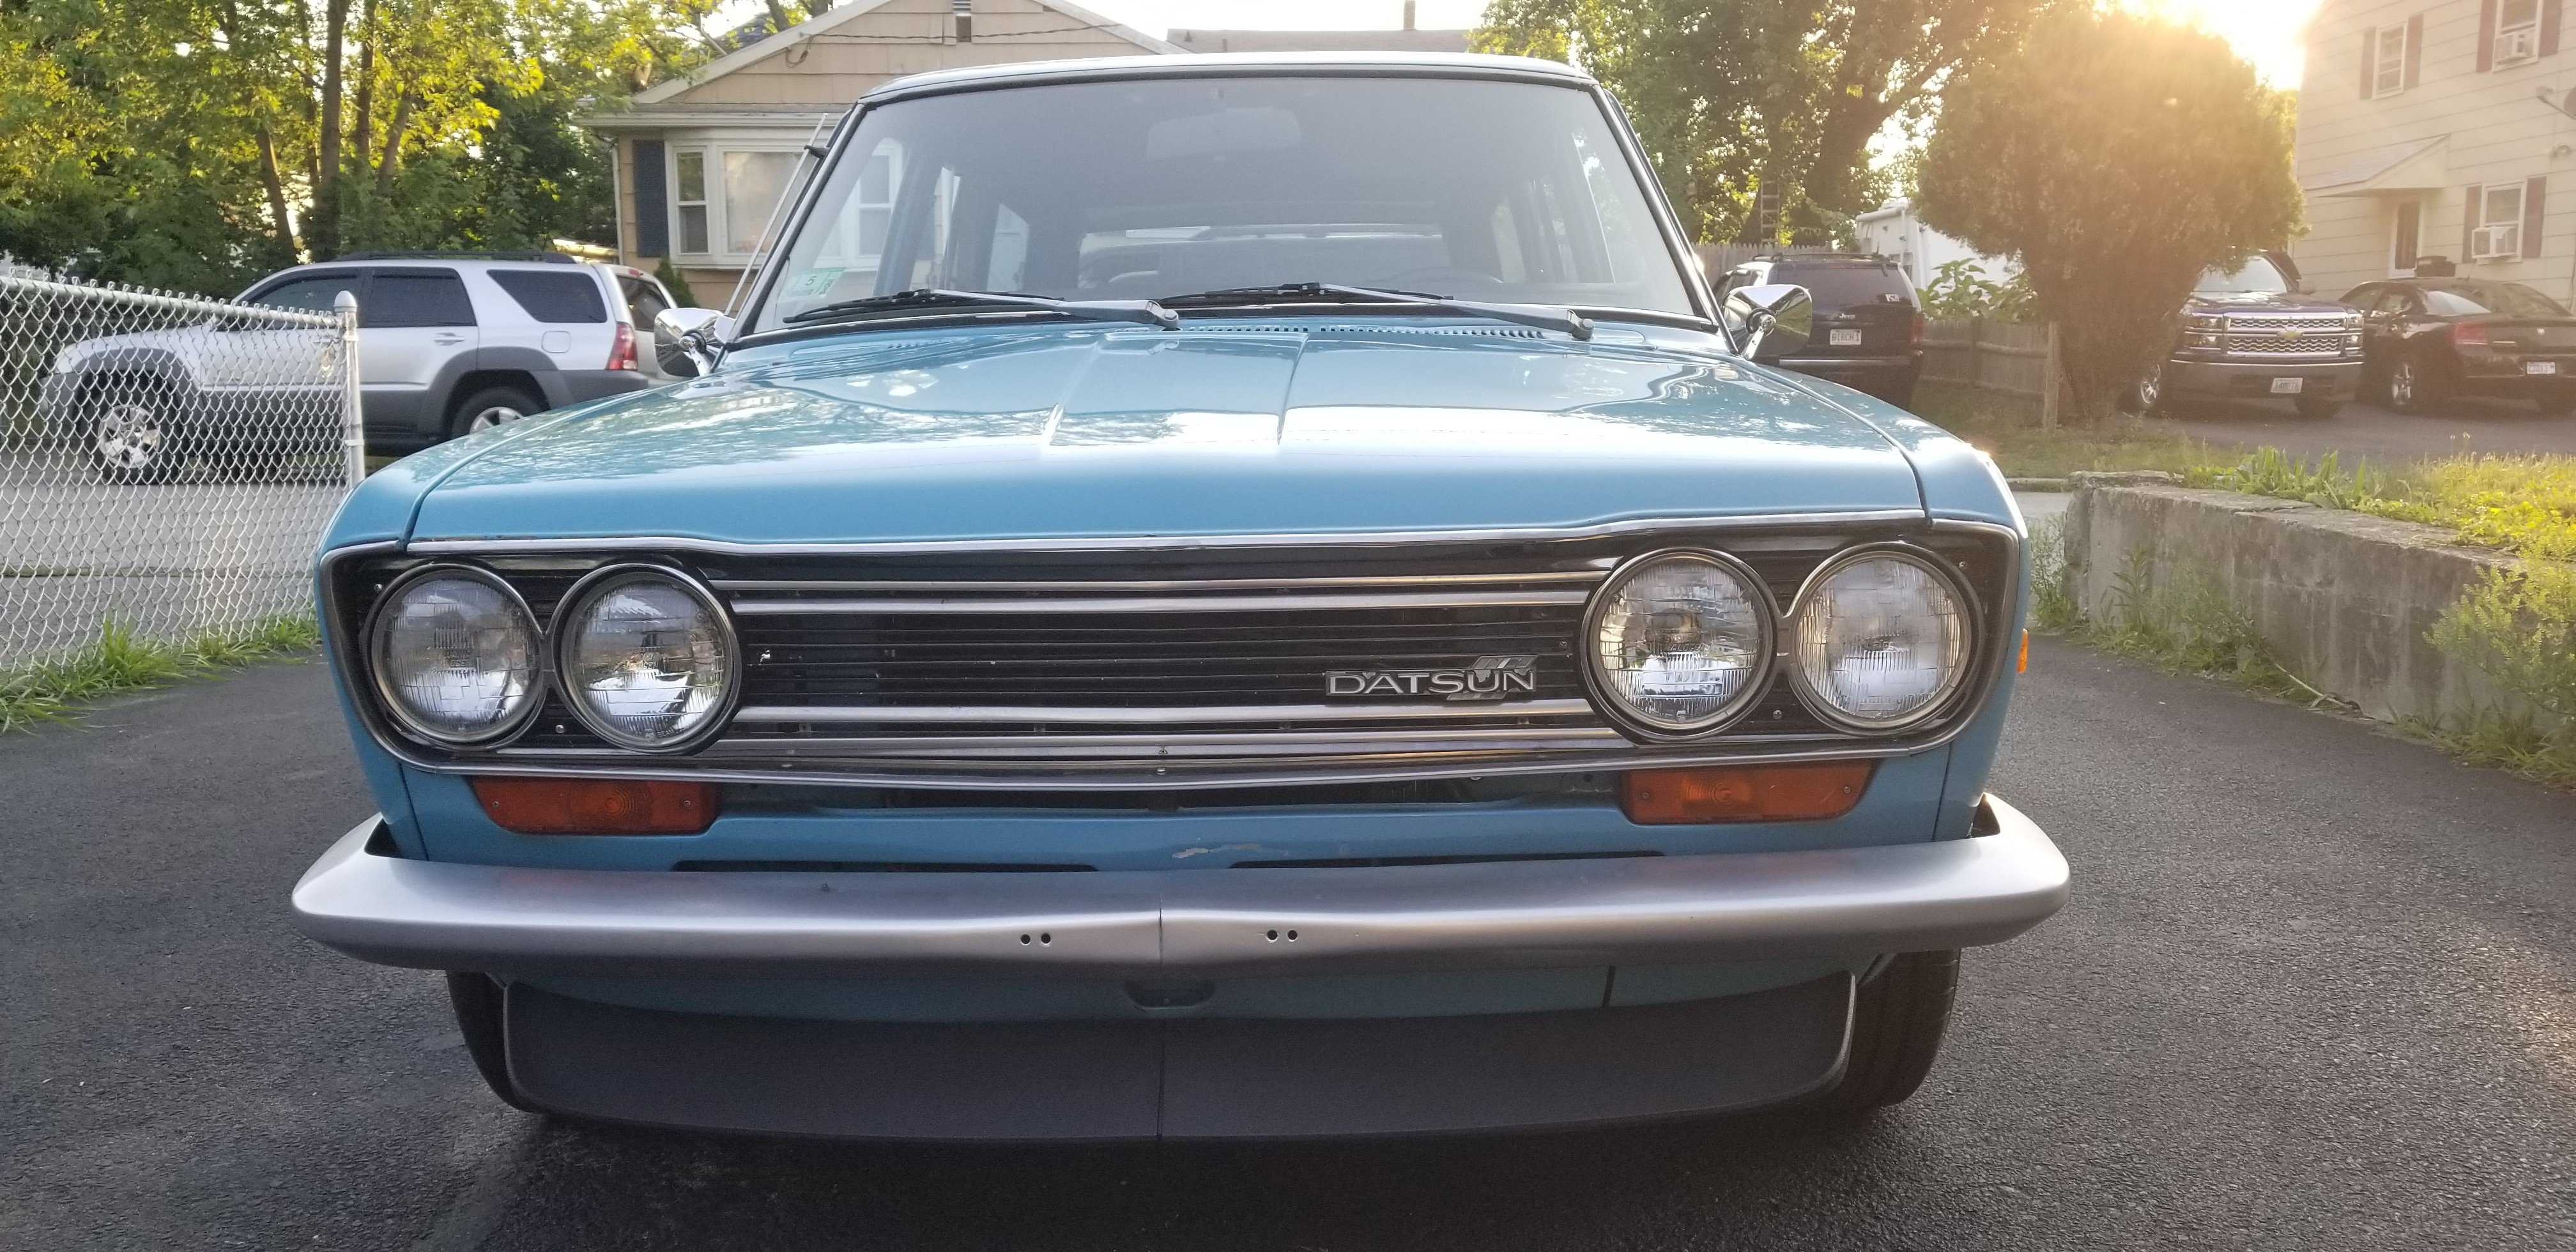 1972 Datsun 510 for sale in Yonkers, NY |